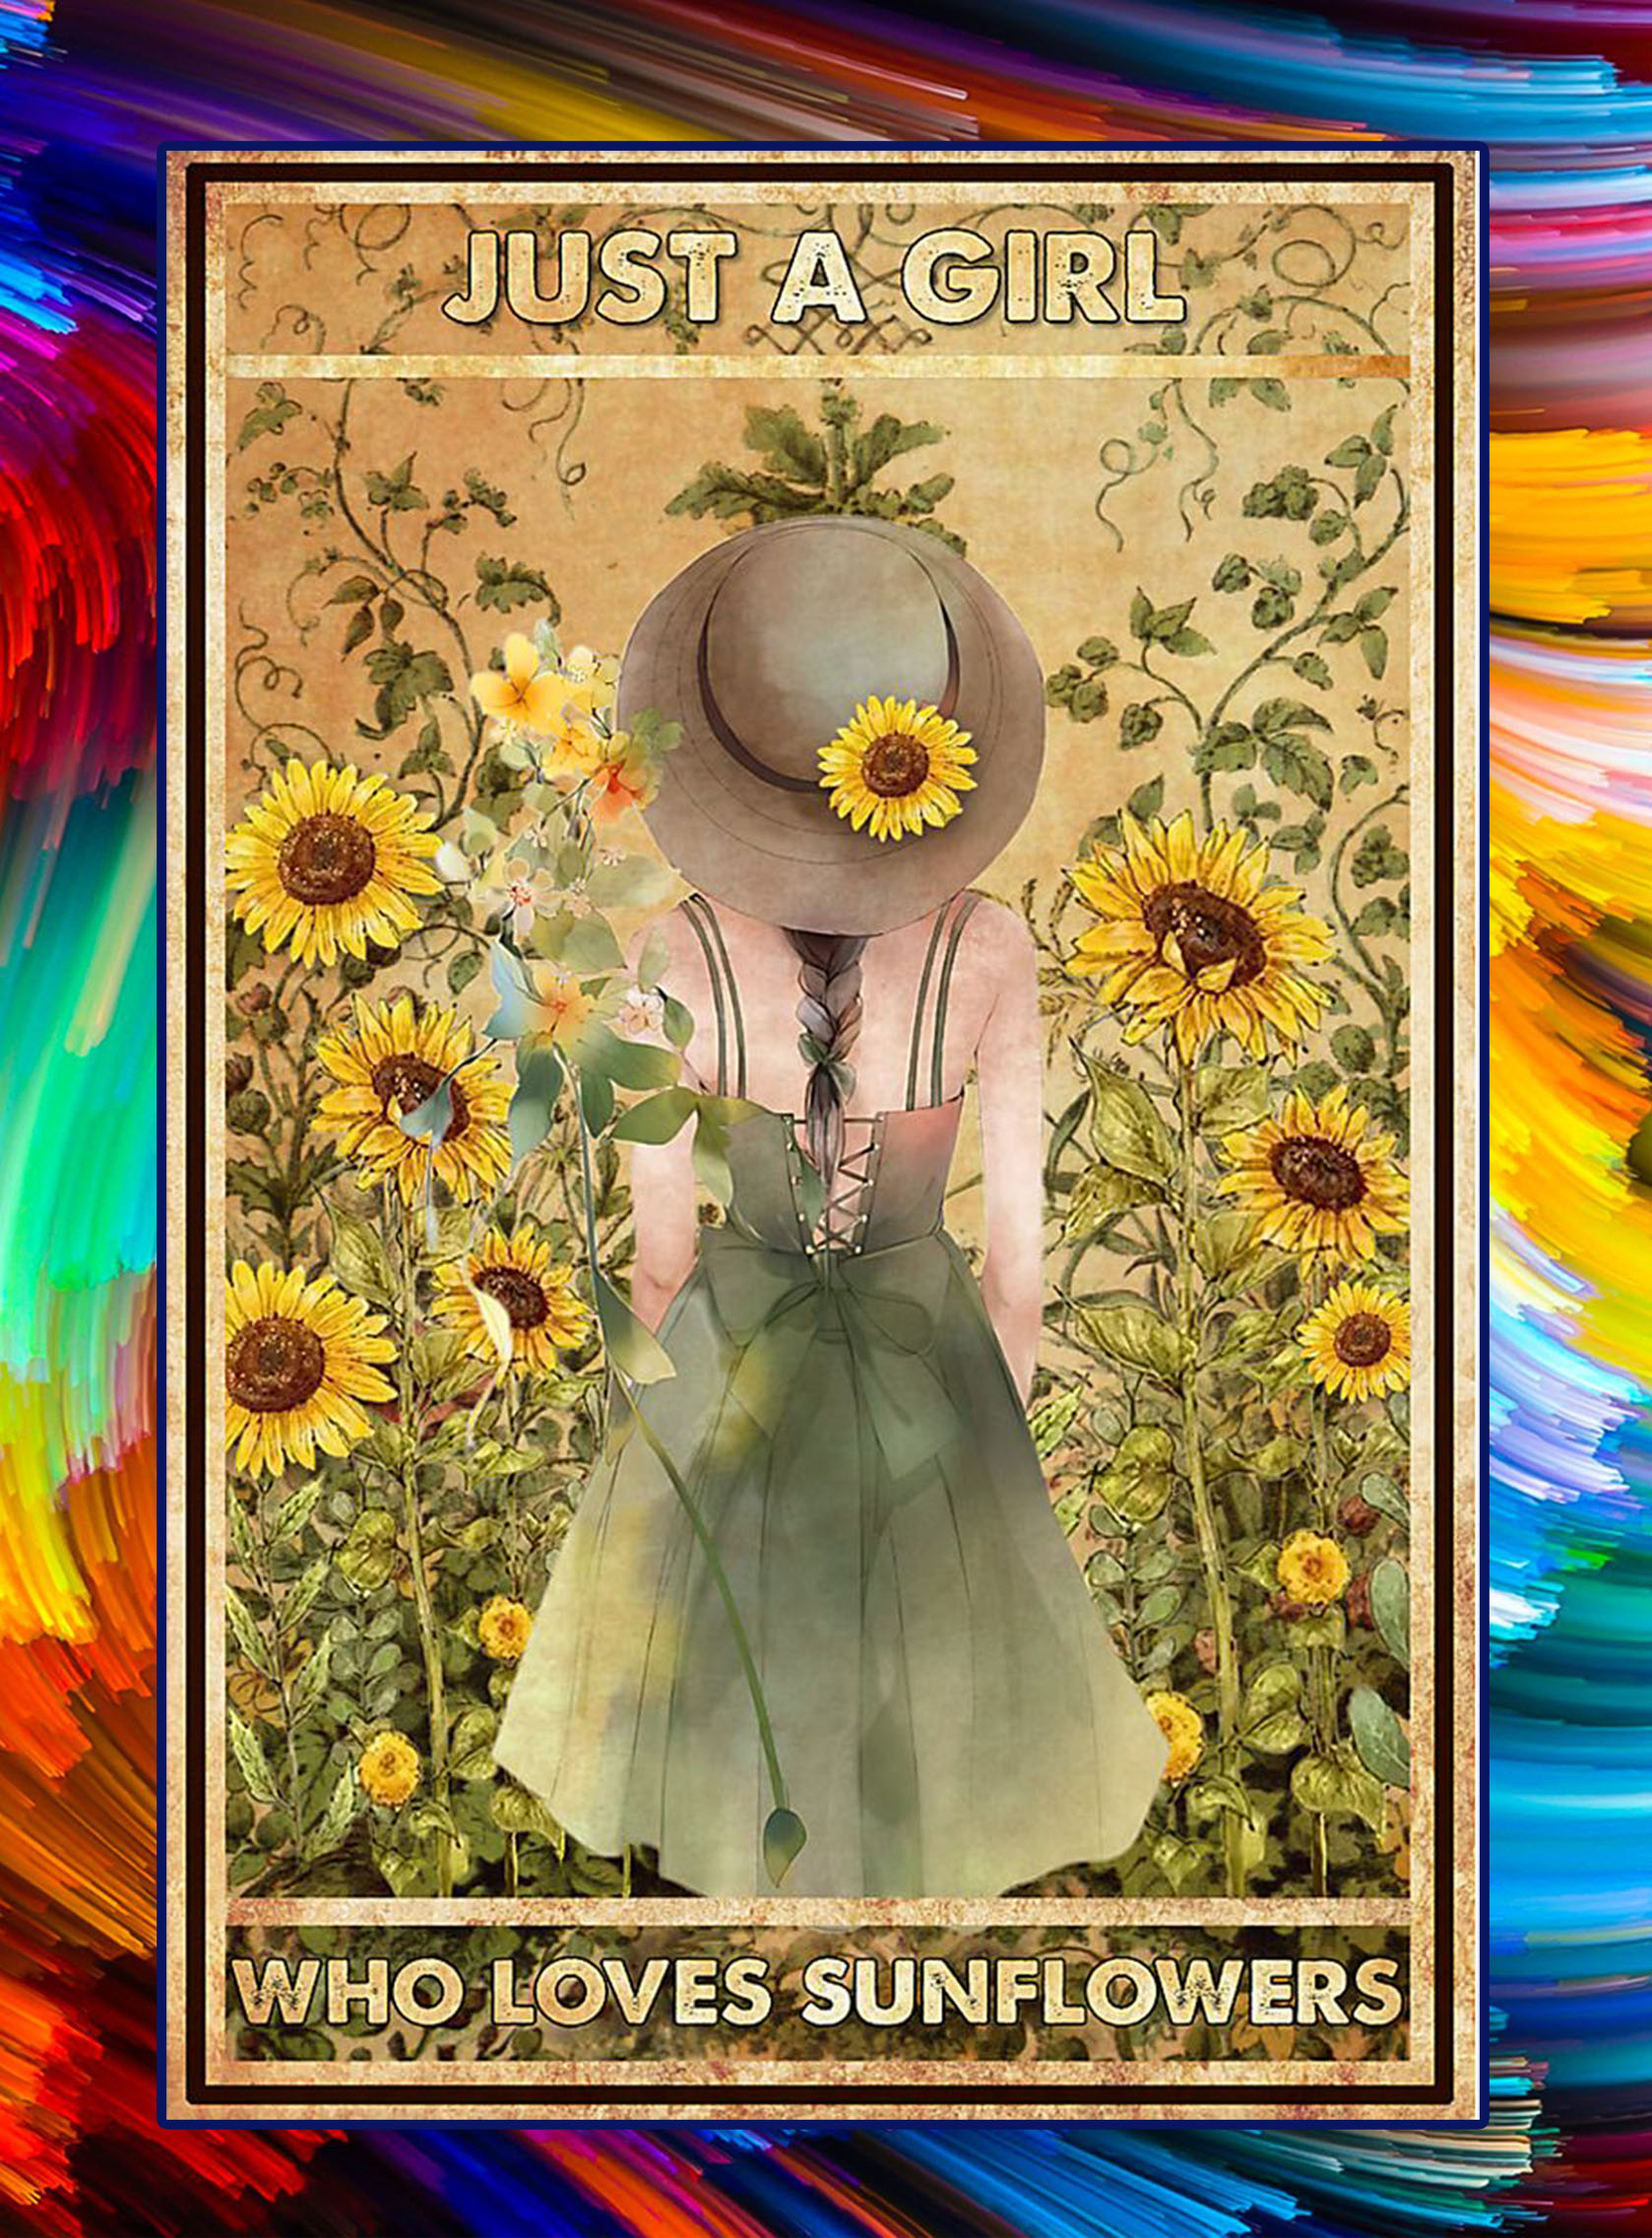 Just a girl who loves sunflowers poster - A1